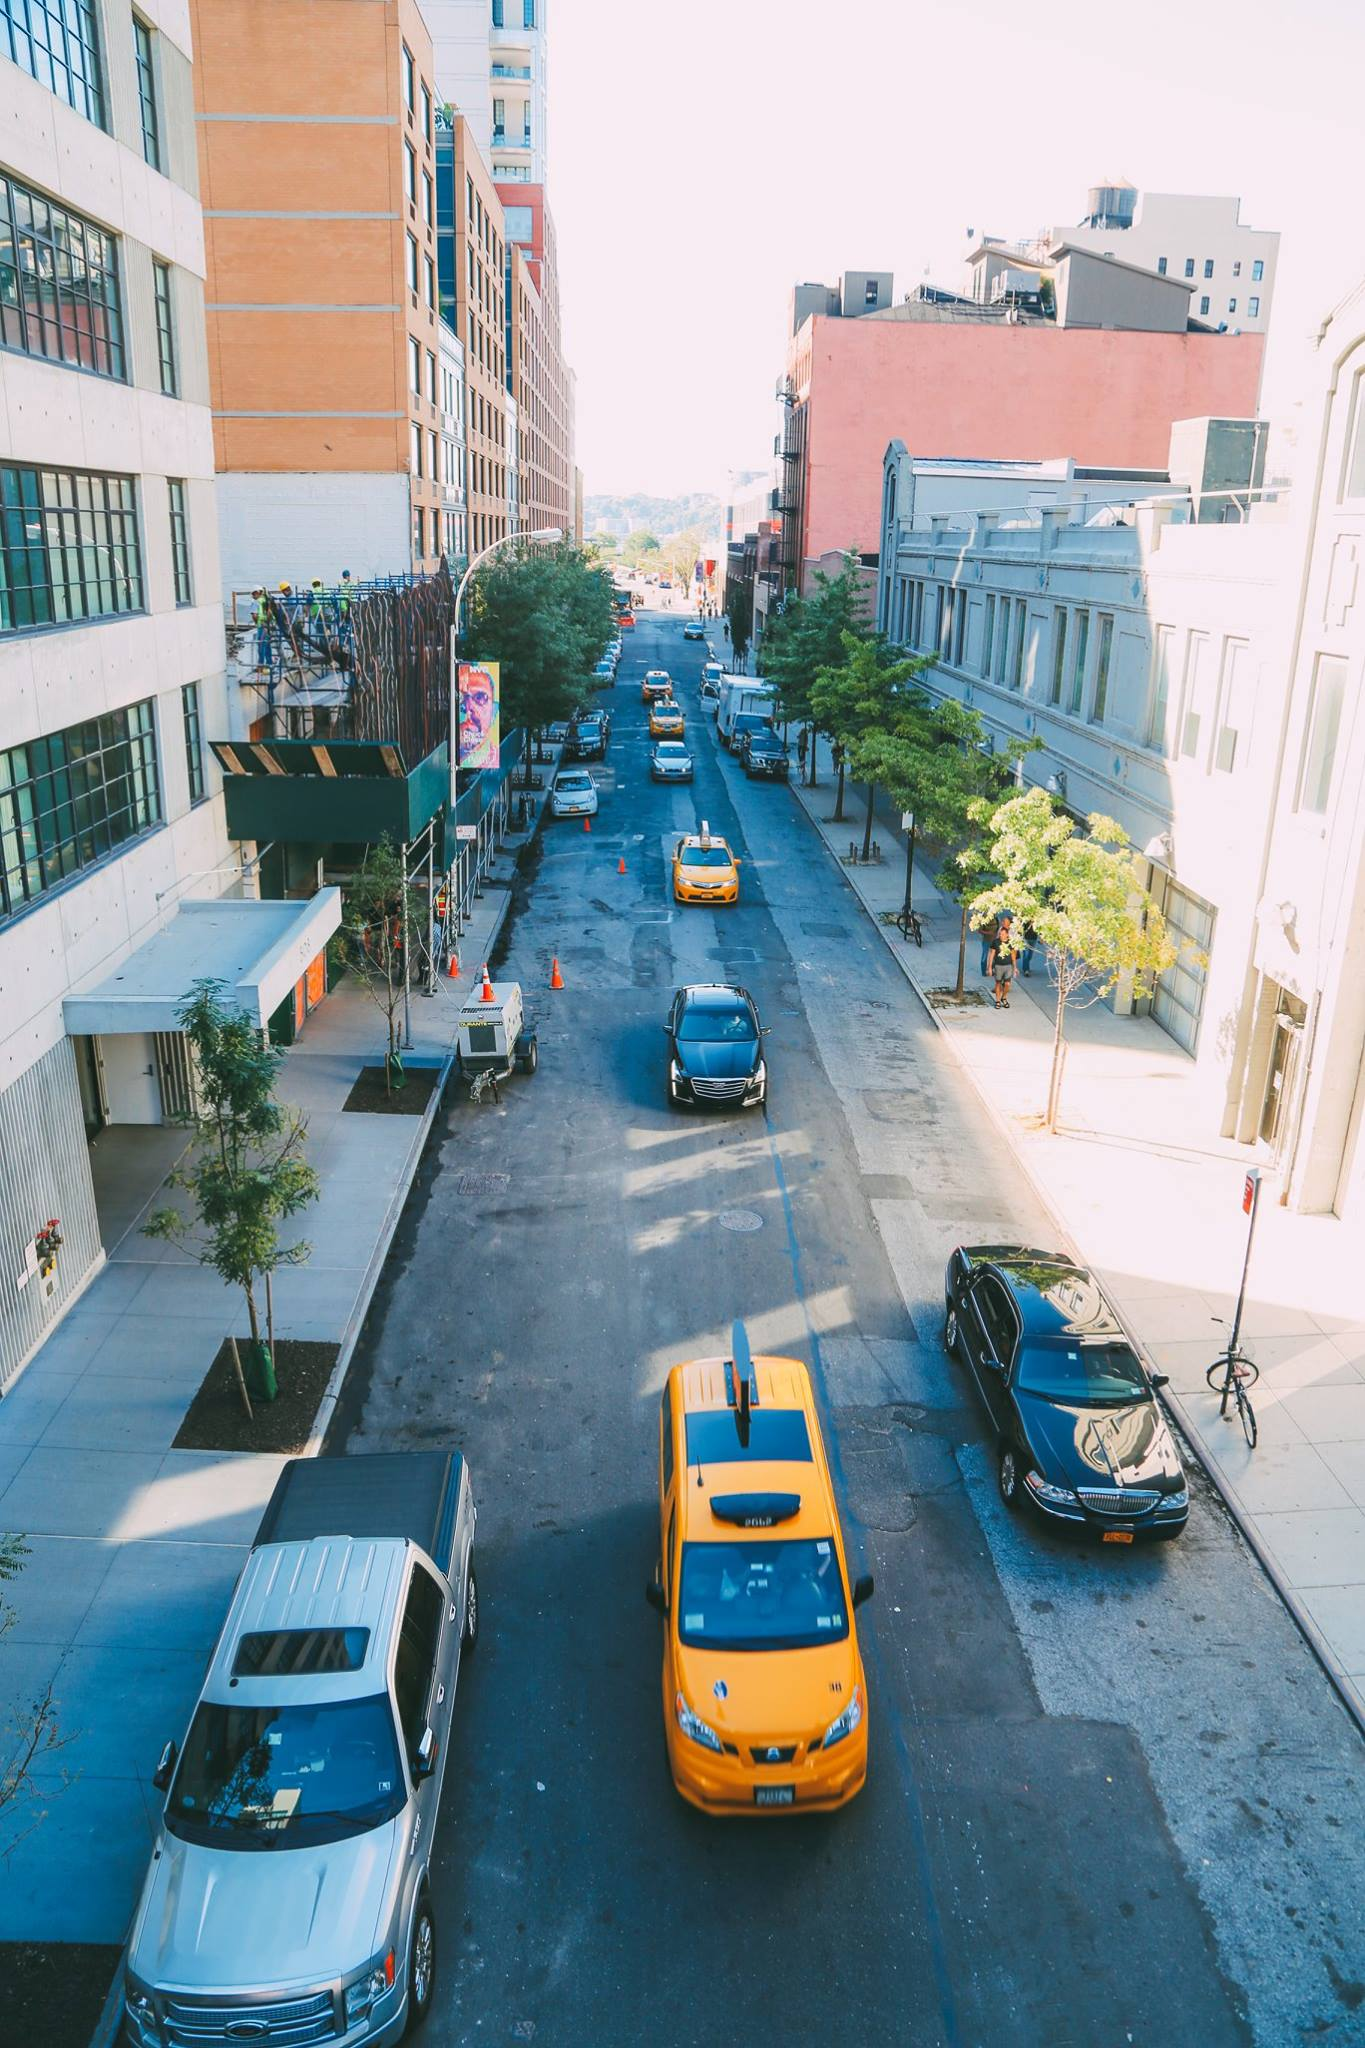 New York Diary: The High Line, Lego House And New York Fashion Week (2)